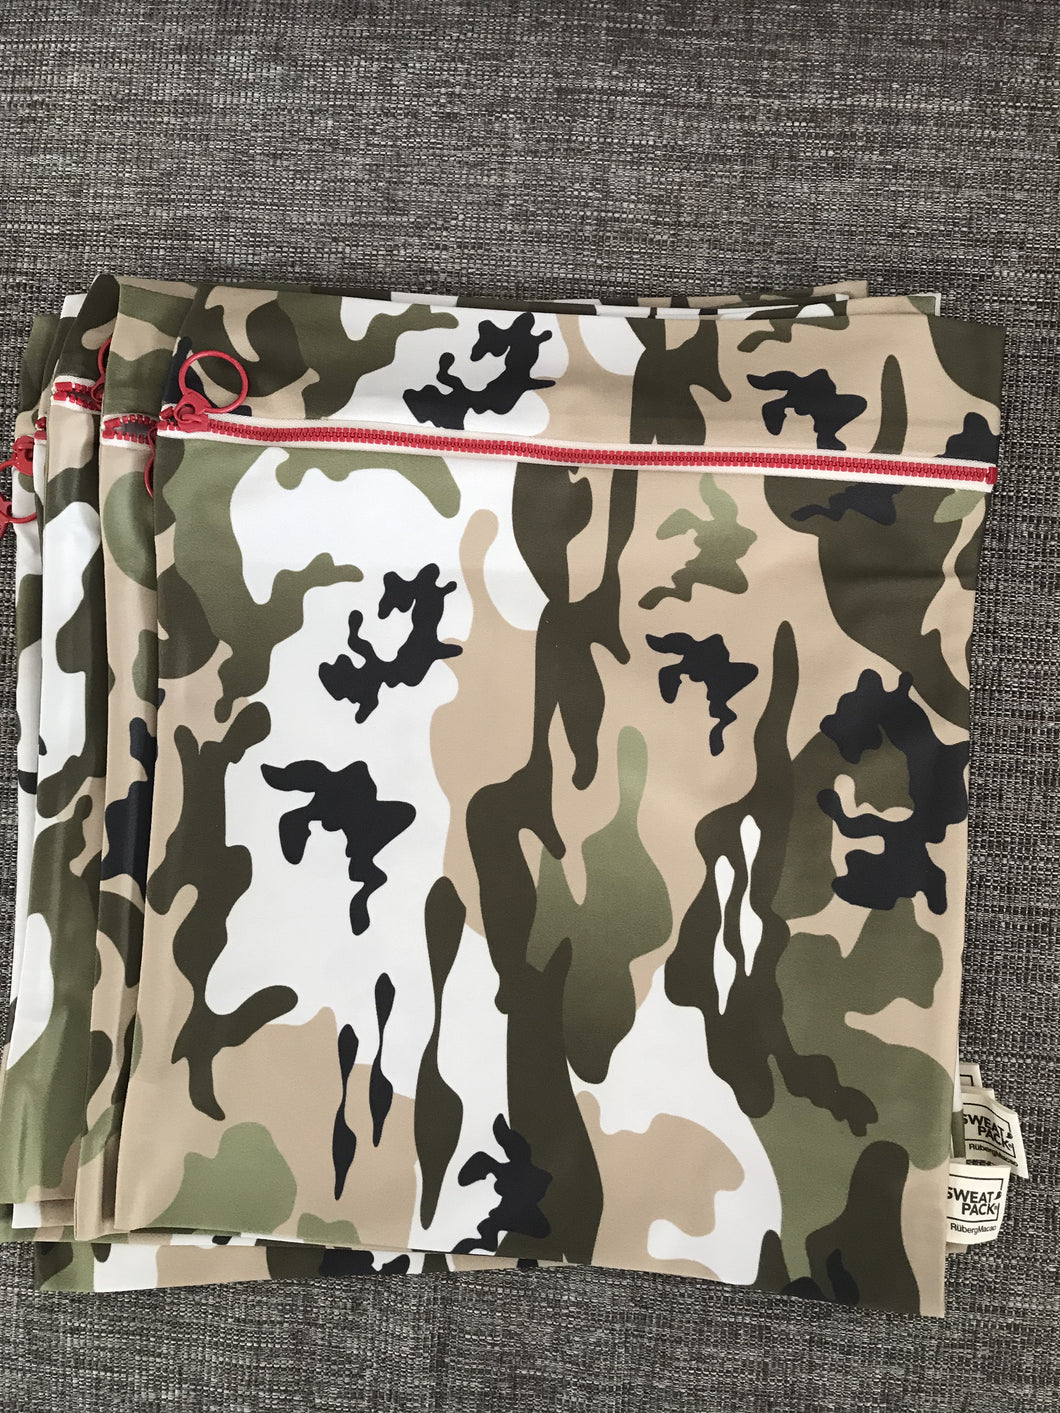 Sweat Pack Camo Large